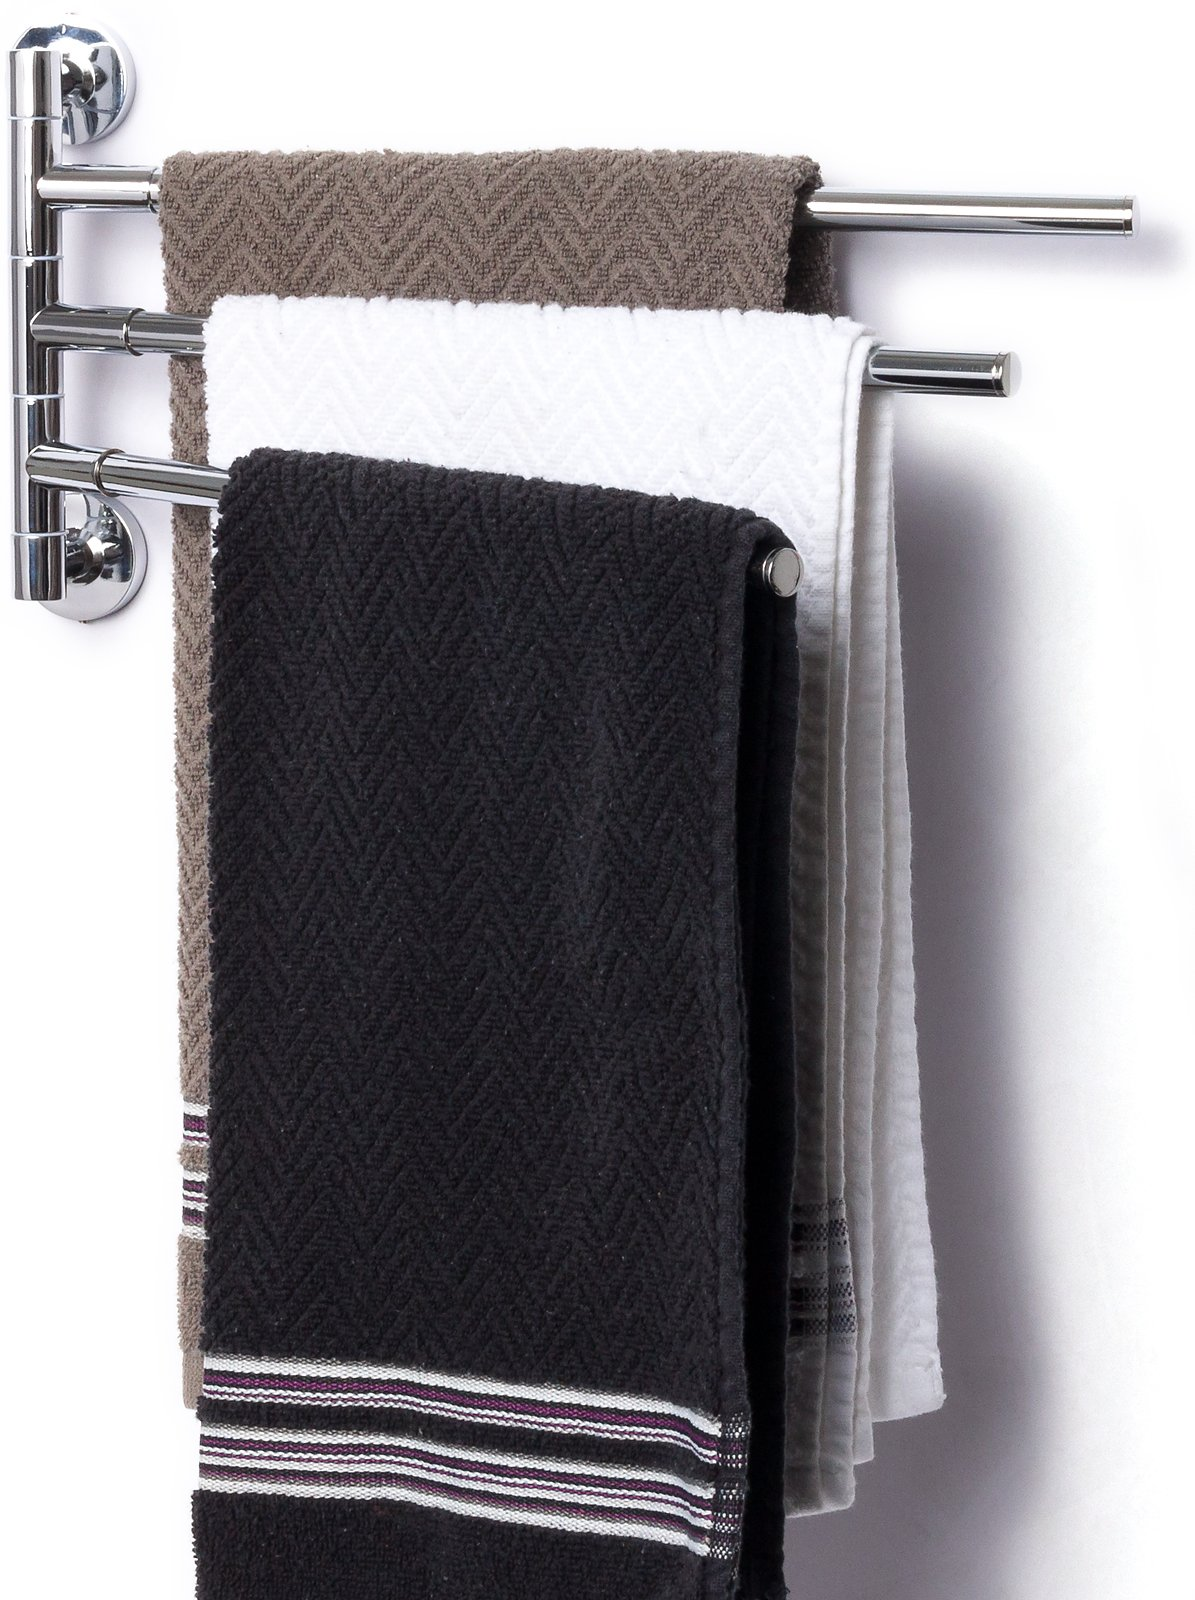 3 Prong Swing Arm Towel Bar - Wall Mounted Stainless Steel Bathroom Towel Rack by Mindful Design (Chrome, 13 inches)